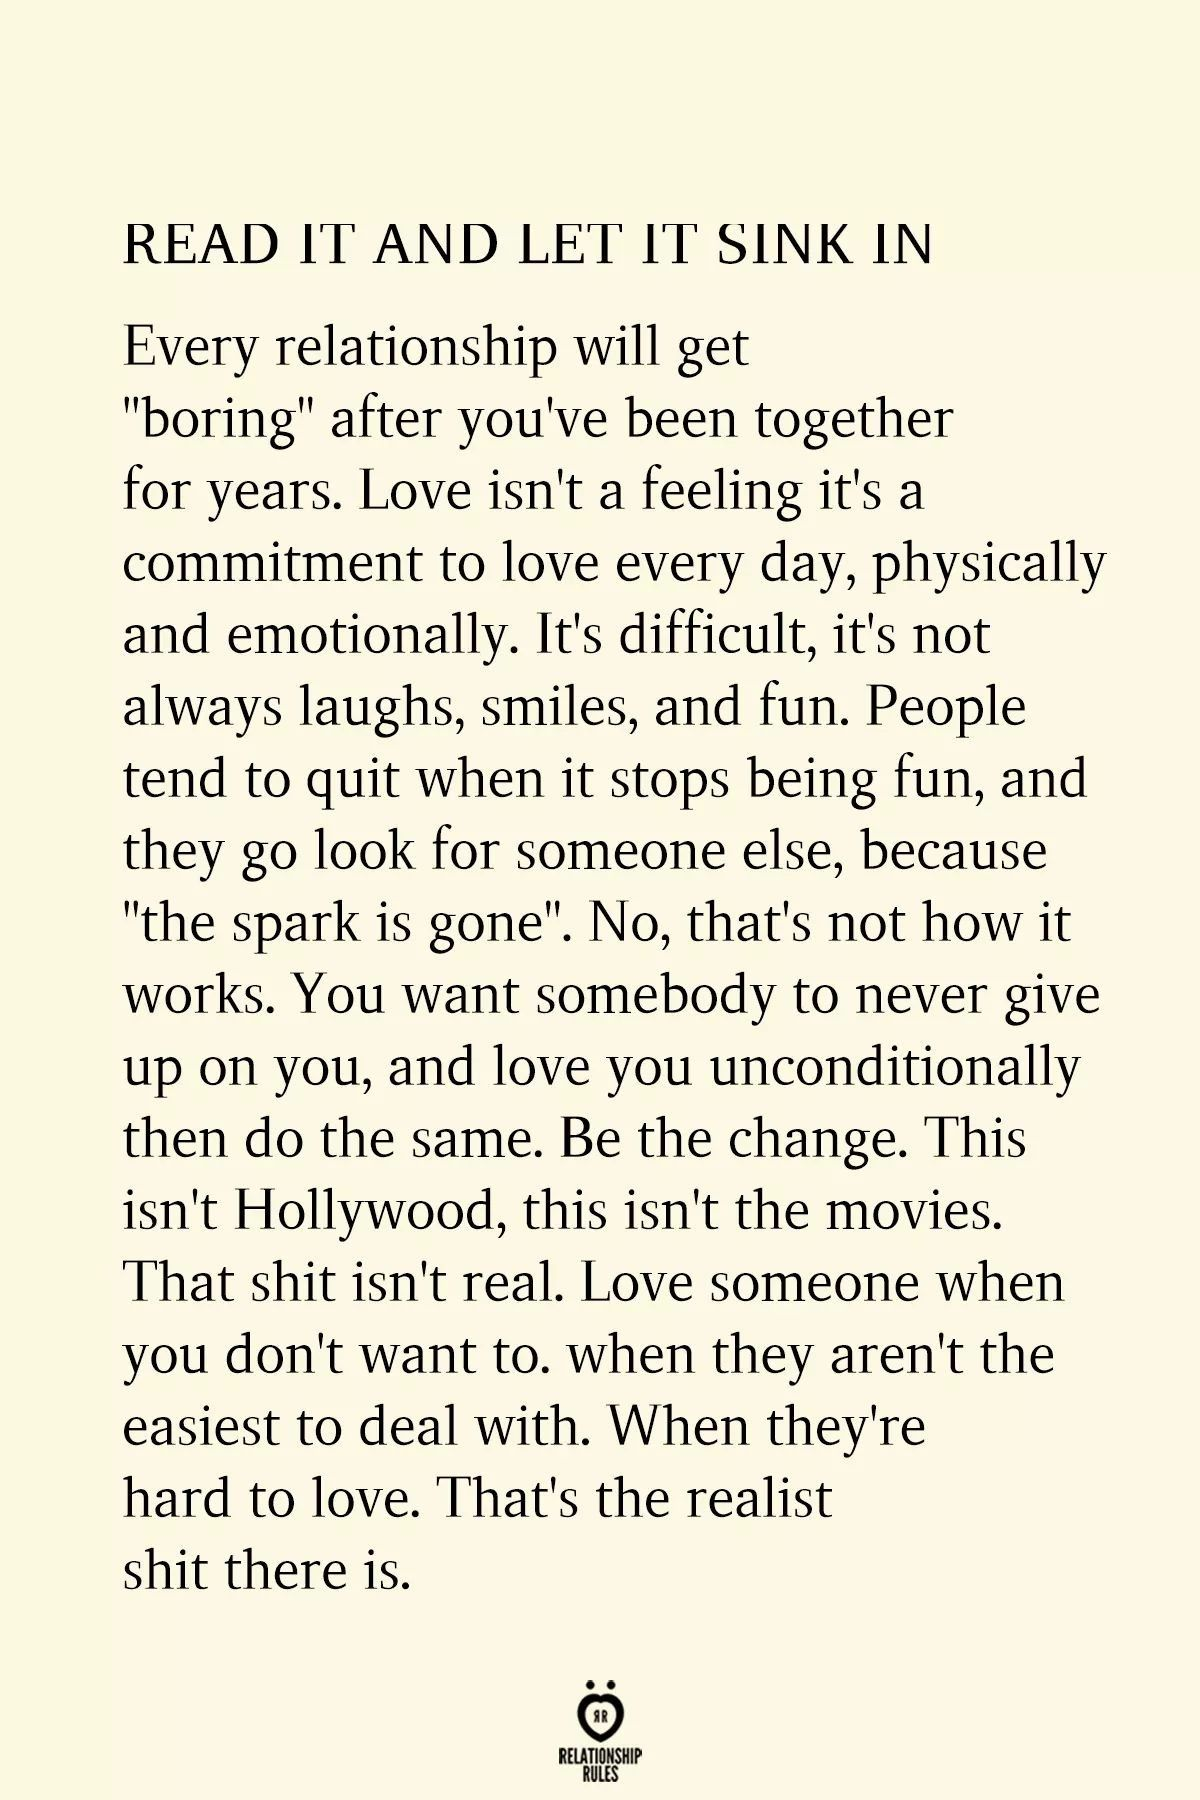 Pin By Michelle Sullivan On Life Relationship Change Quotes Go For It Quotes Quotes About Friendship Changing